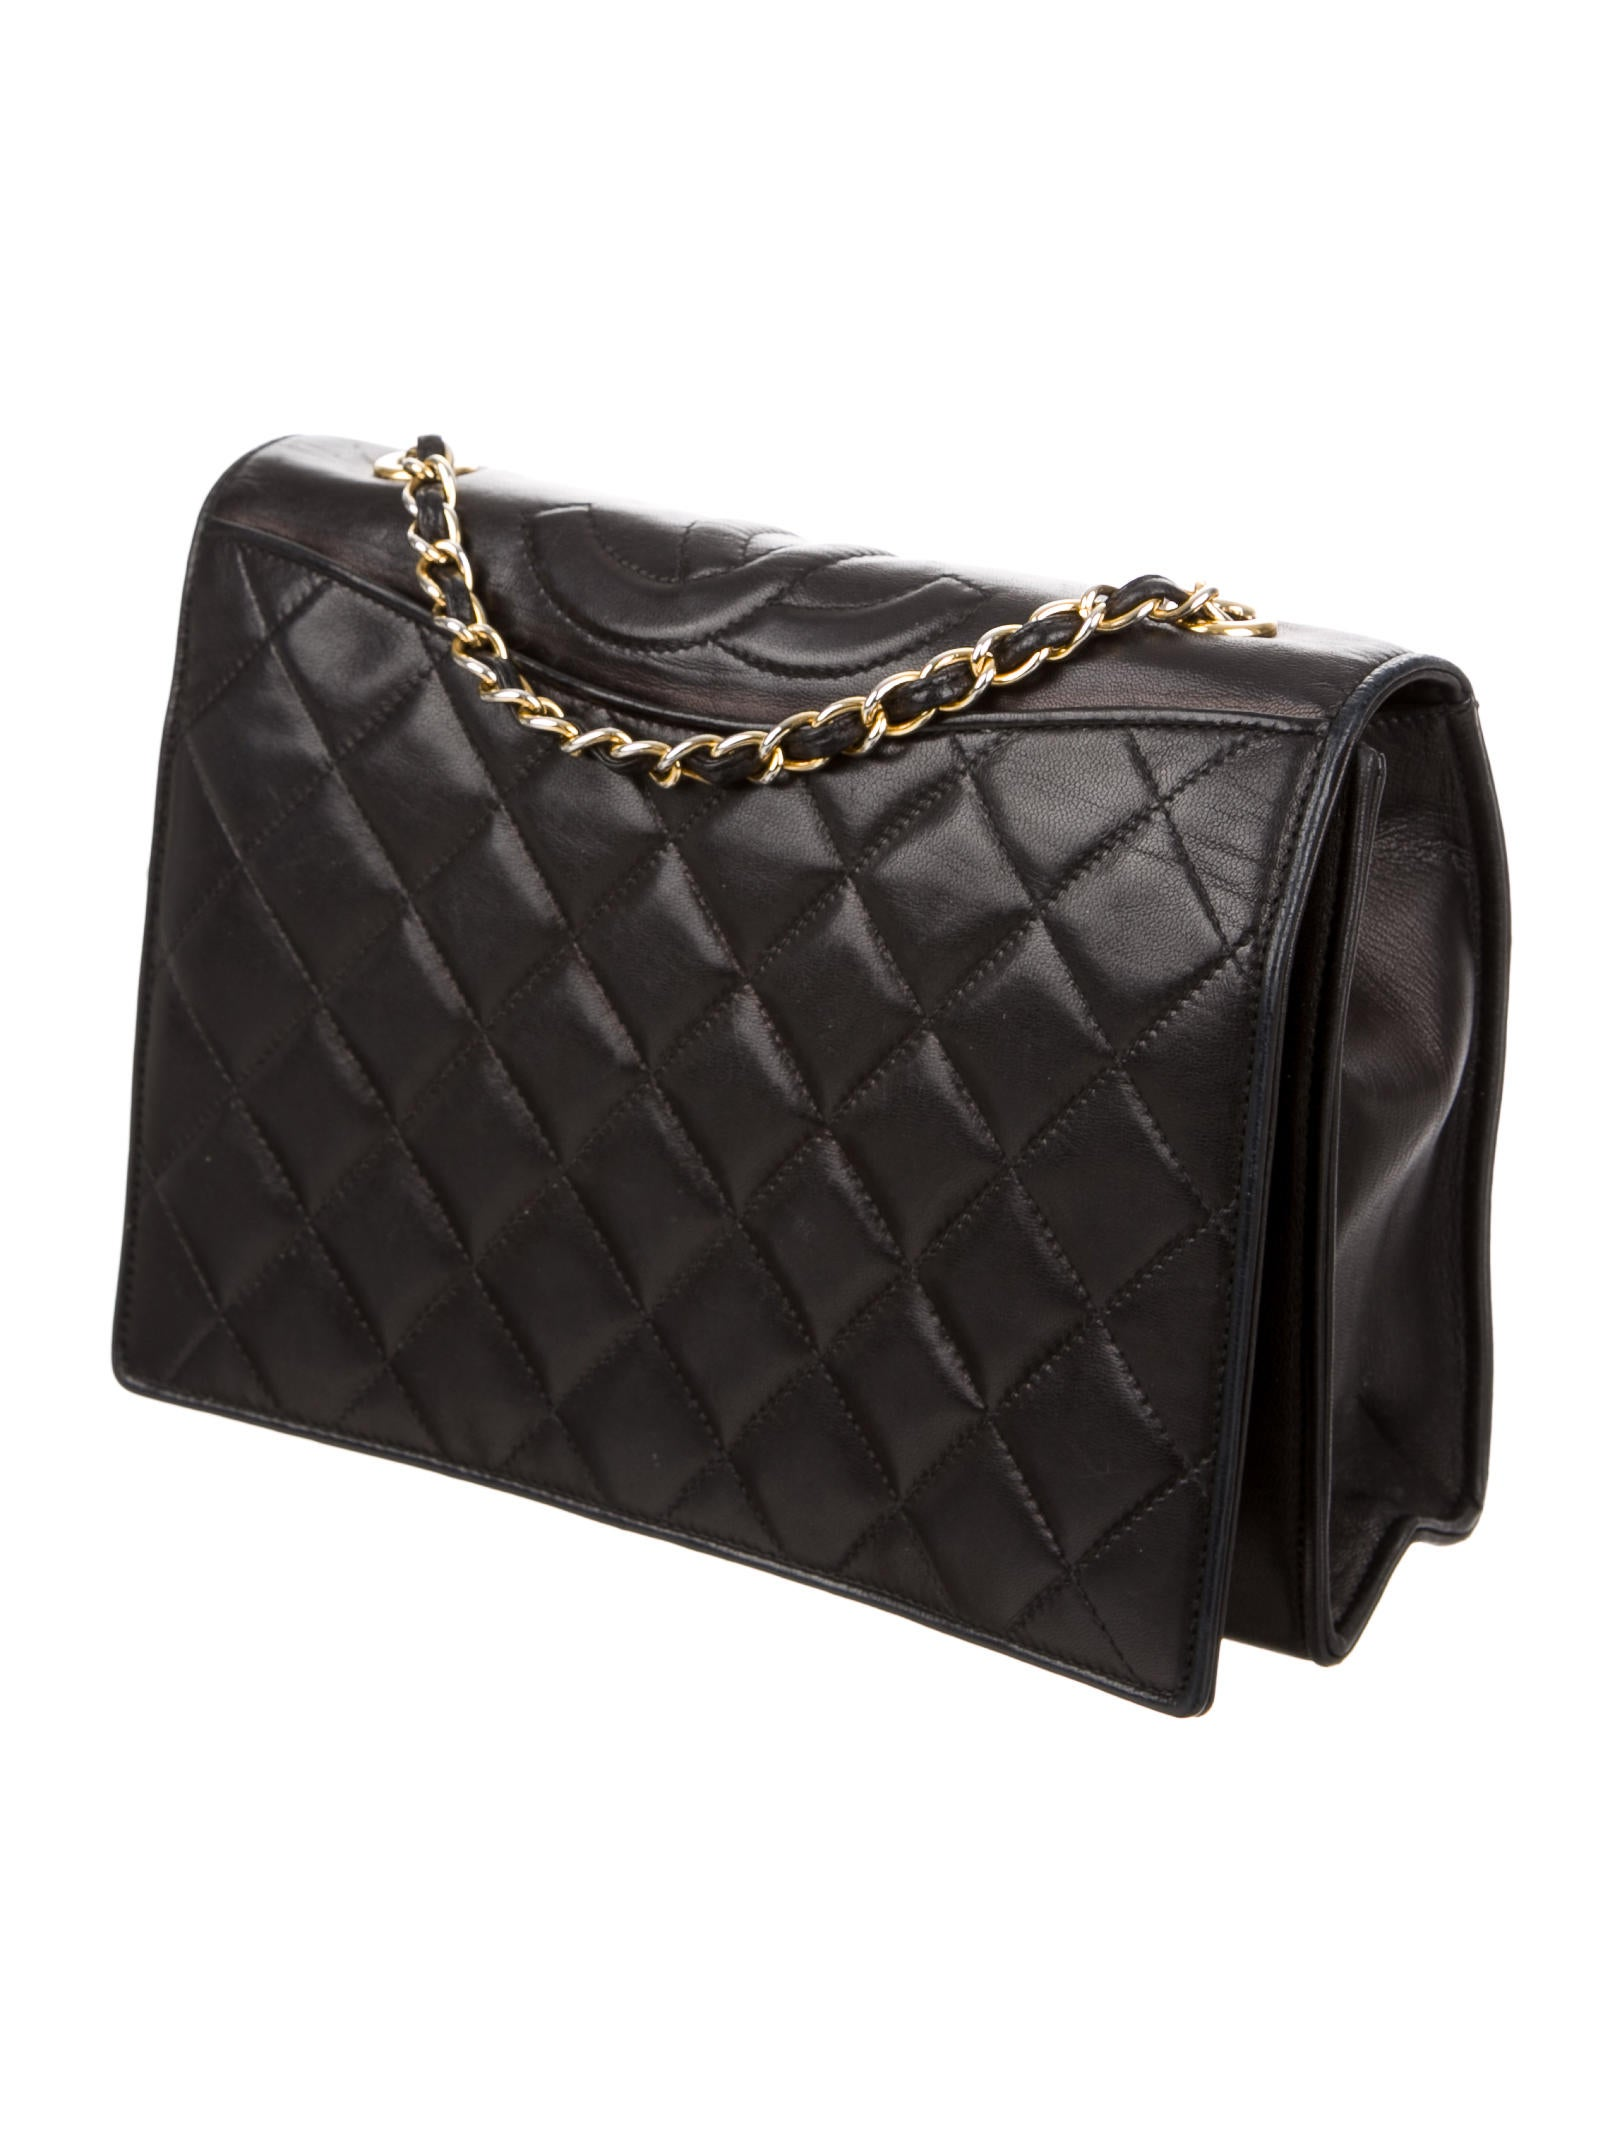 Chanel Quilted Lambskin Flap Bag